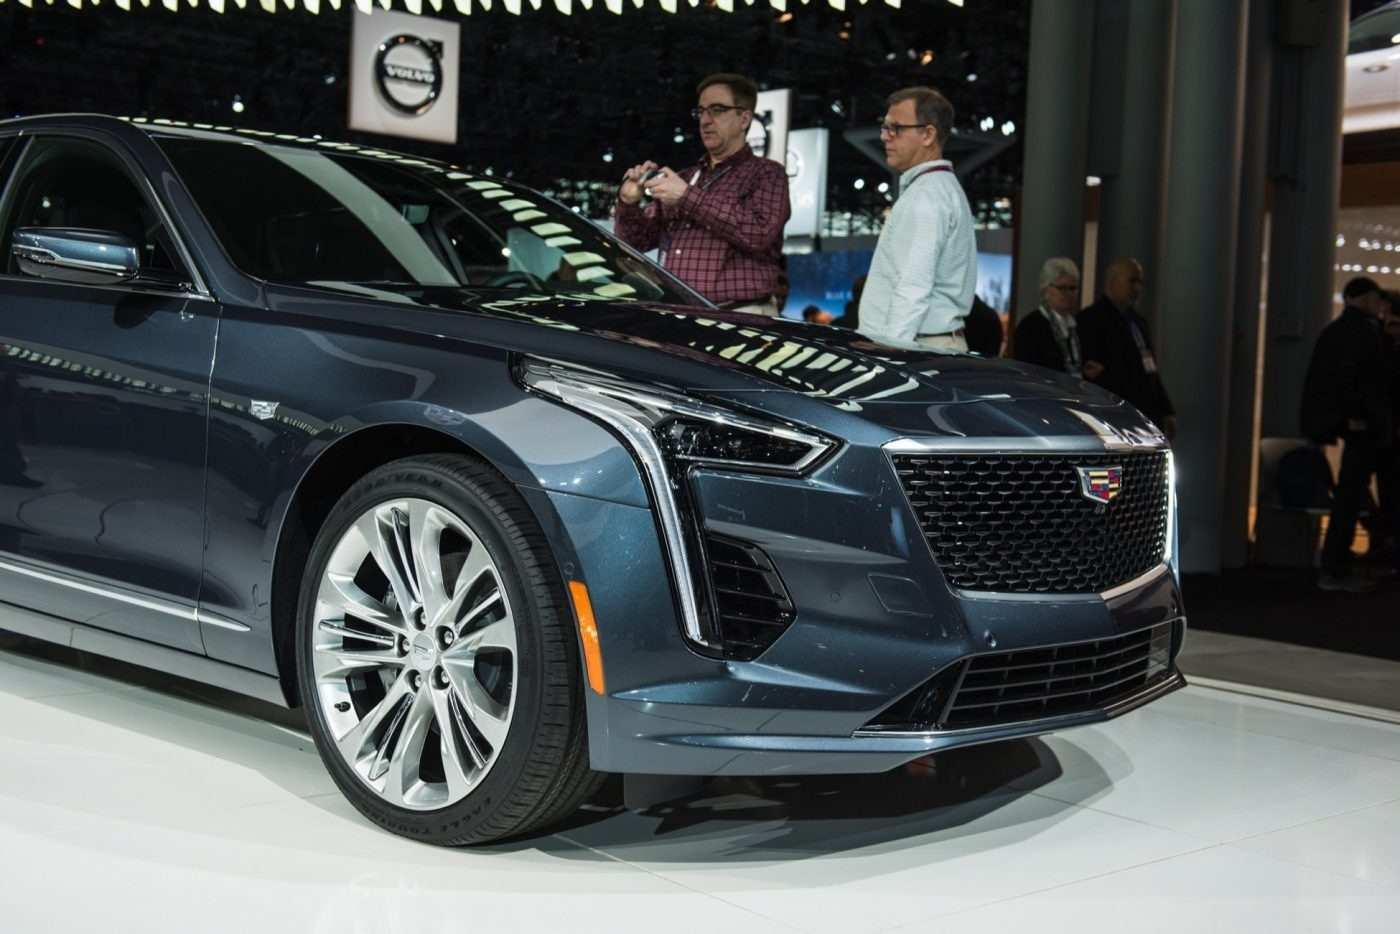 79 The Cadillac 2019 Ct5 Overview And Price Exterior and Interior with Cadillac 2019 Ct5 Overview And Price